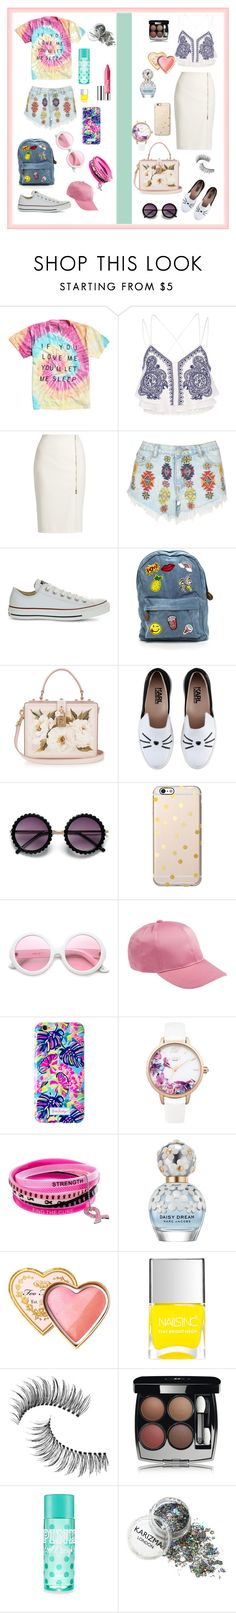 """Разные стили"" by explorer-14579595798 on Polyvore featuring мода, River Island, MaxMara, Lipsy, Converse, Dolce&Gabbana, Karl Lagerfeld, ZeroUV, Lilly Pulitzer и Marc Jacobs"